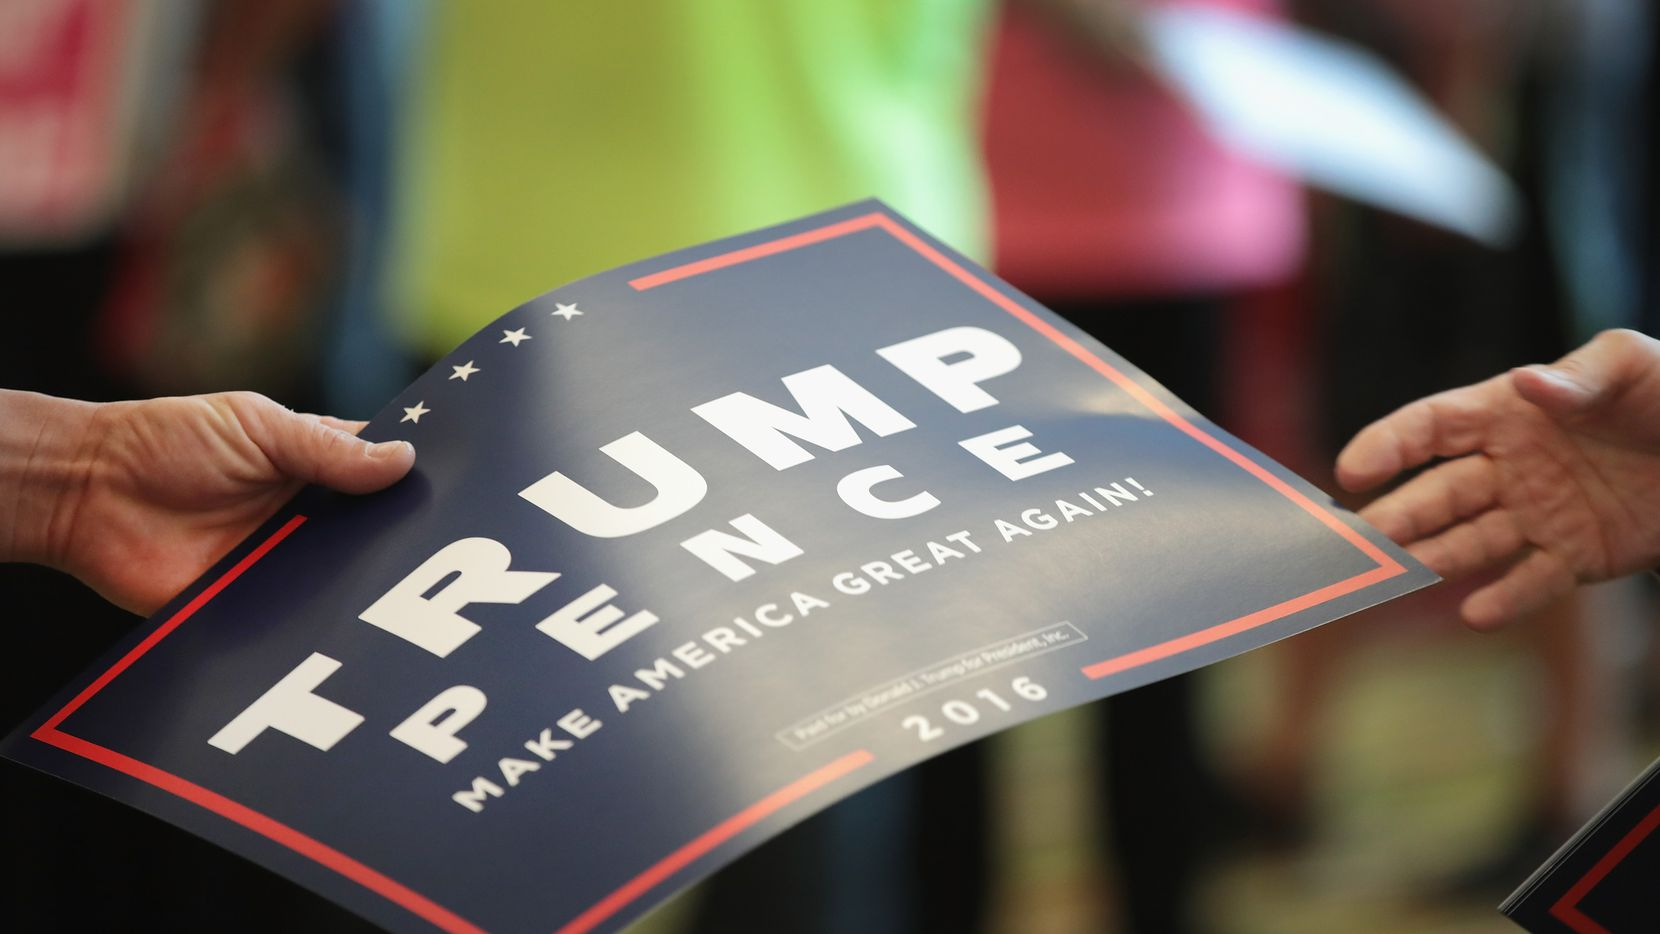 GREEN BAY, WI - OCTOBER 17:  A volunteer hands out signs before the start of a campaign rally with Republican presidential nominee Donald Trump at the KI Convention Center on October 17, 2016 in Green Bay, Wisconsin. Trump will square off with democratic rival Hillary Clinton for a final debate before the election on October 19 in Las Vegas.  (Photo by Scott Olson/Getty Images)